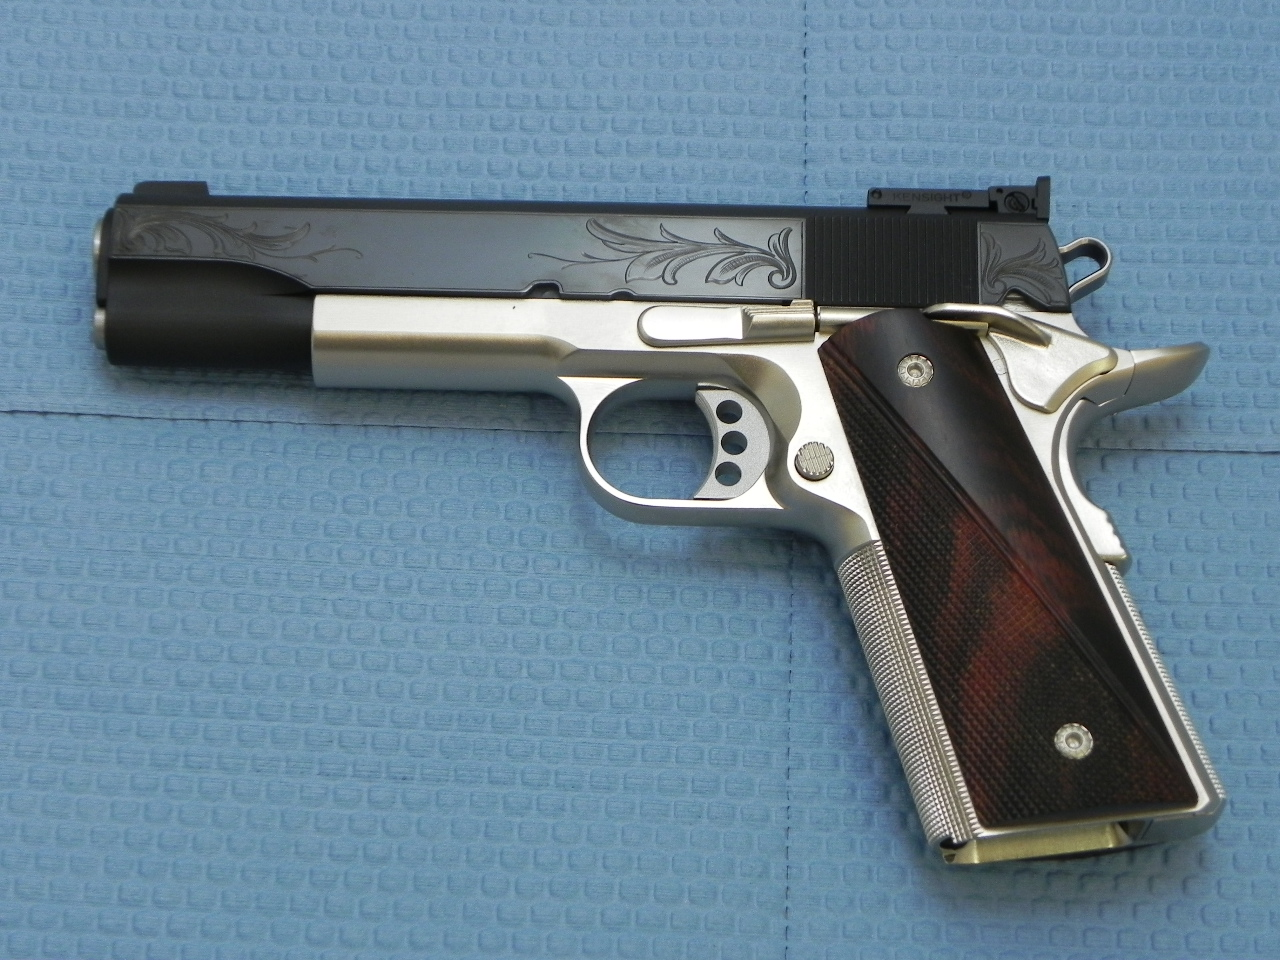 0071 - Cylinder and Slide Custom 1911 with Engraved Slide